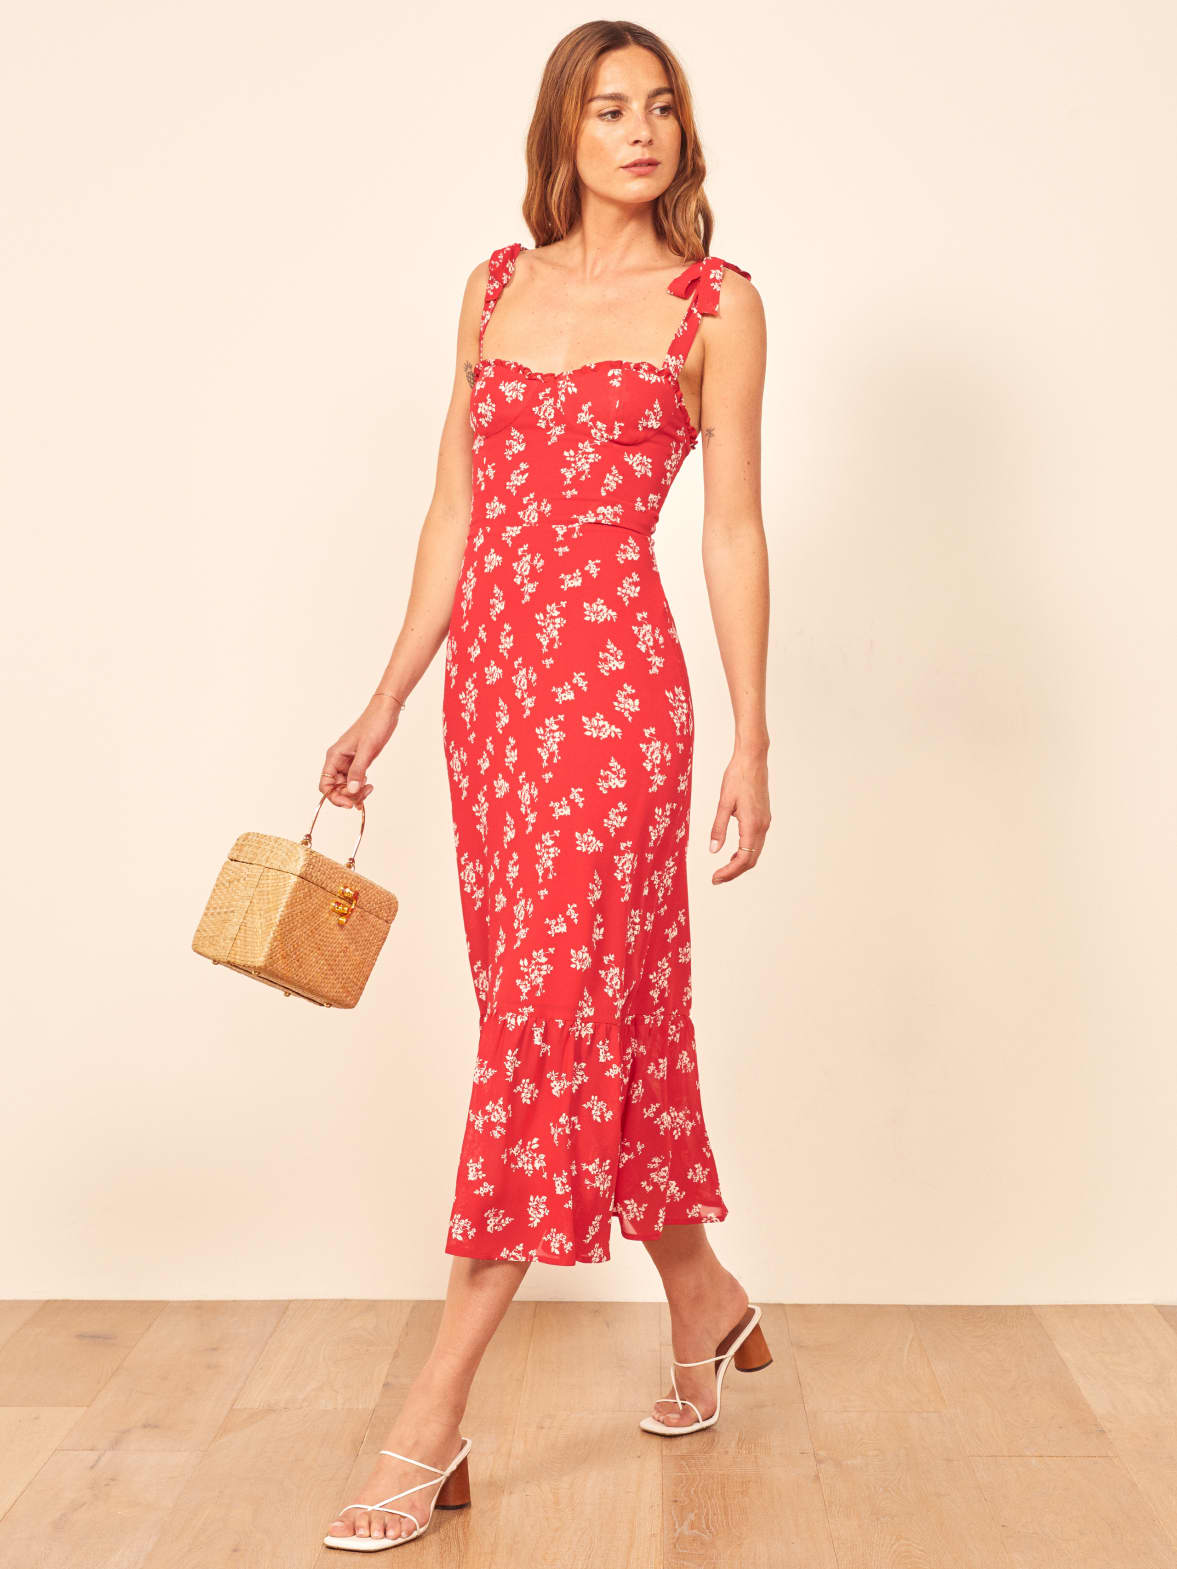 I love this dress and all dresses by Reformation. They are definitely investment pieces and worth it if you have a few wedding coming up!